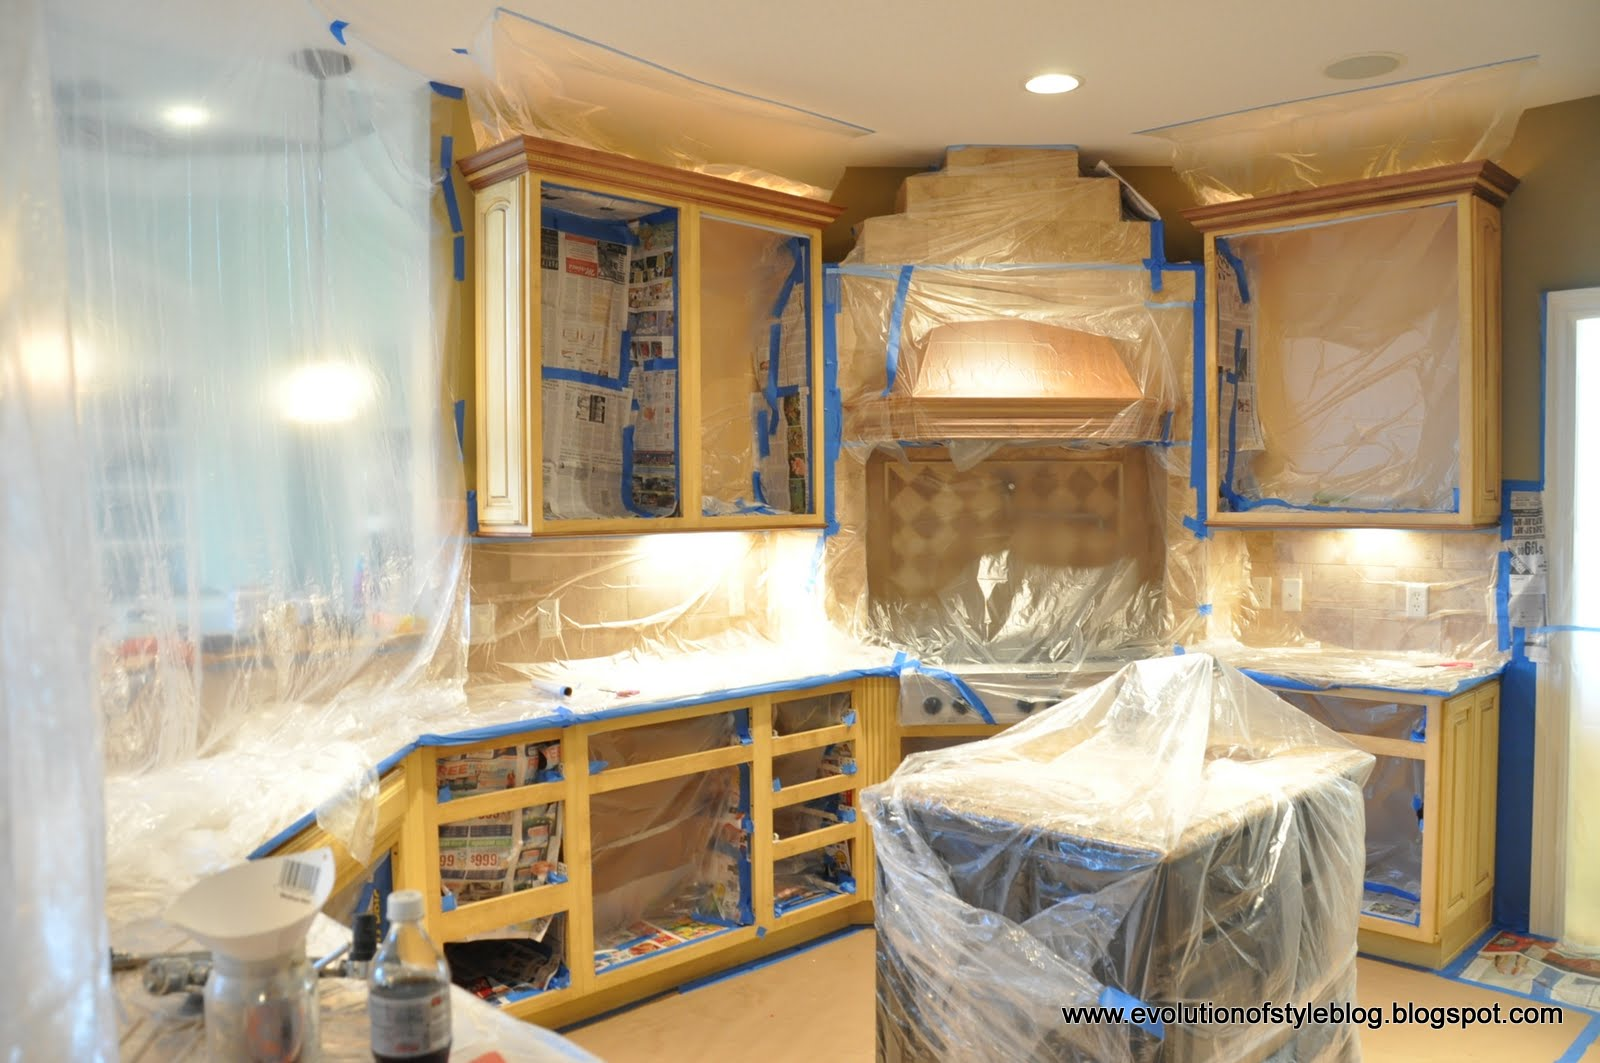 Spraying Kitchen Cabinets Lowes Remodel Reviews How To Paint Your Like A Pro